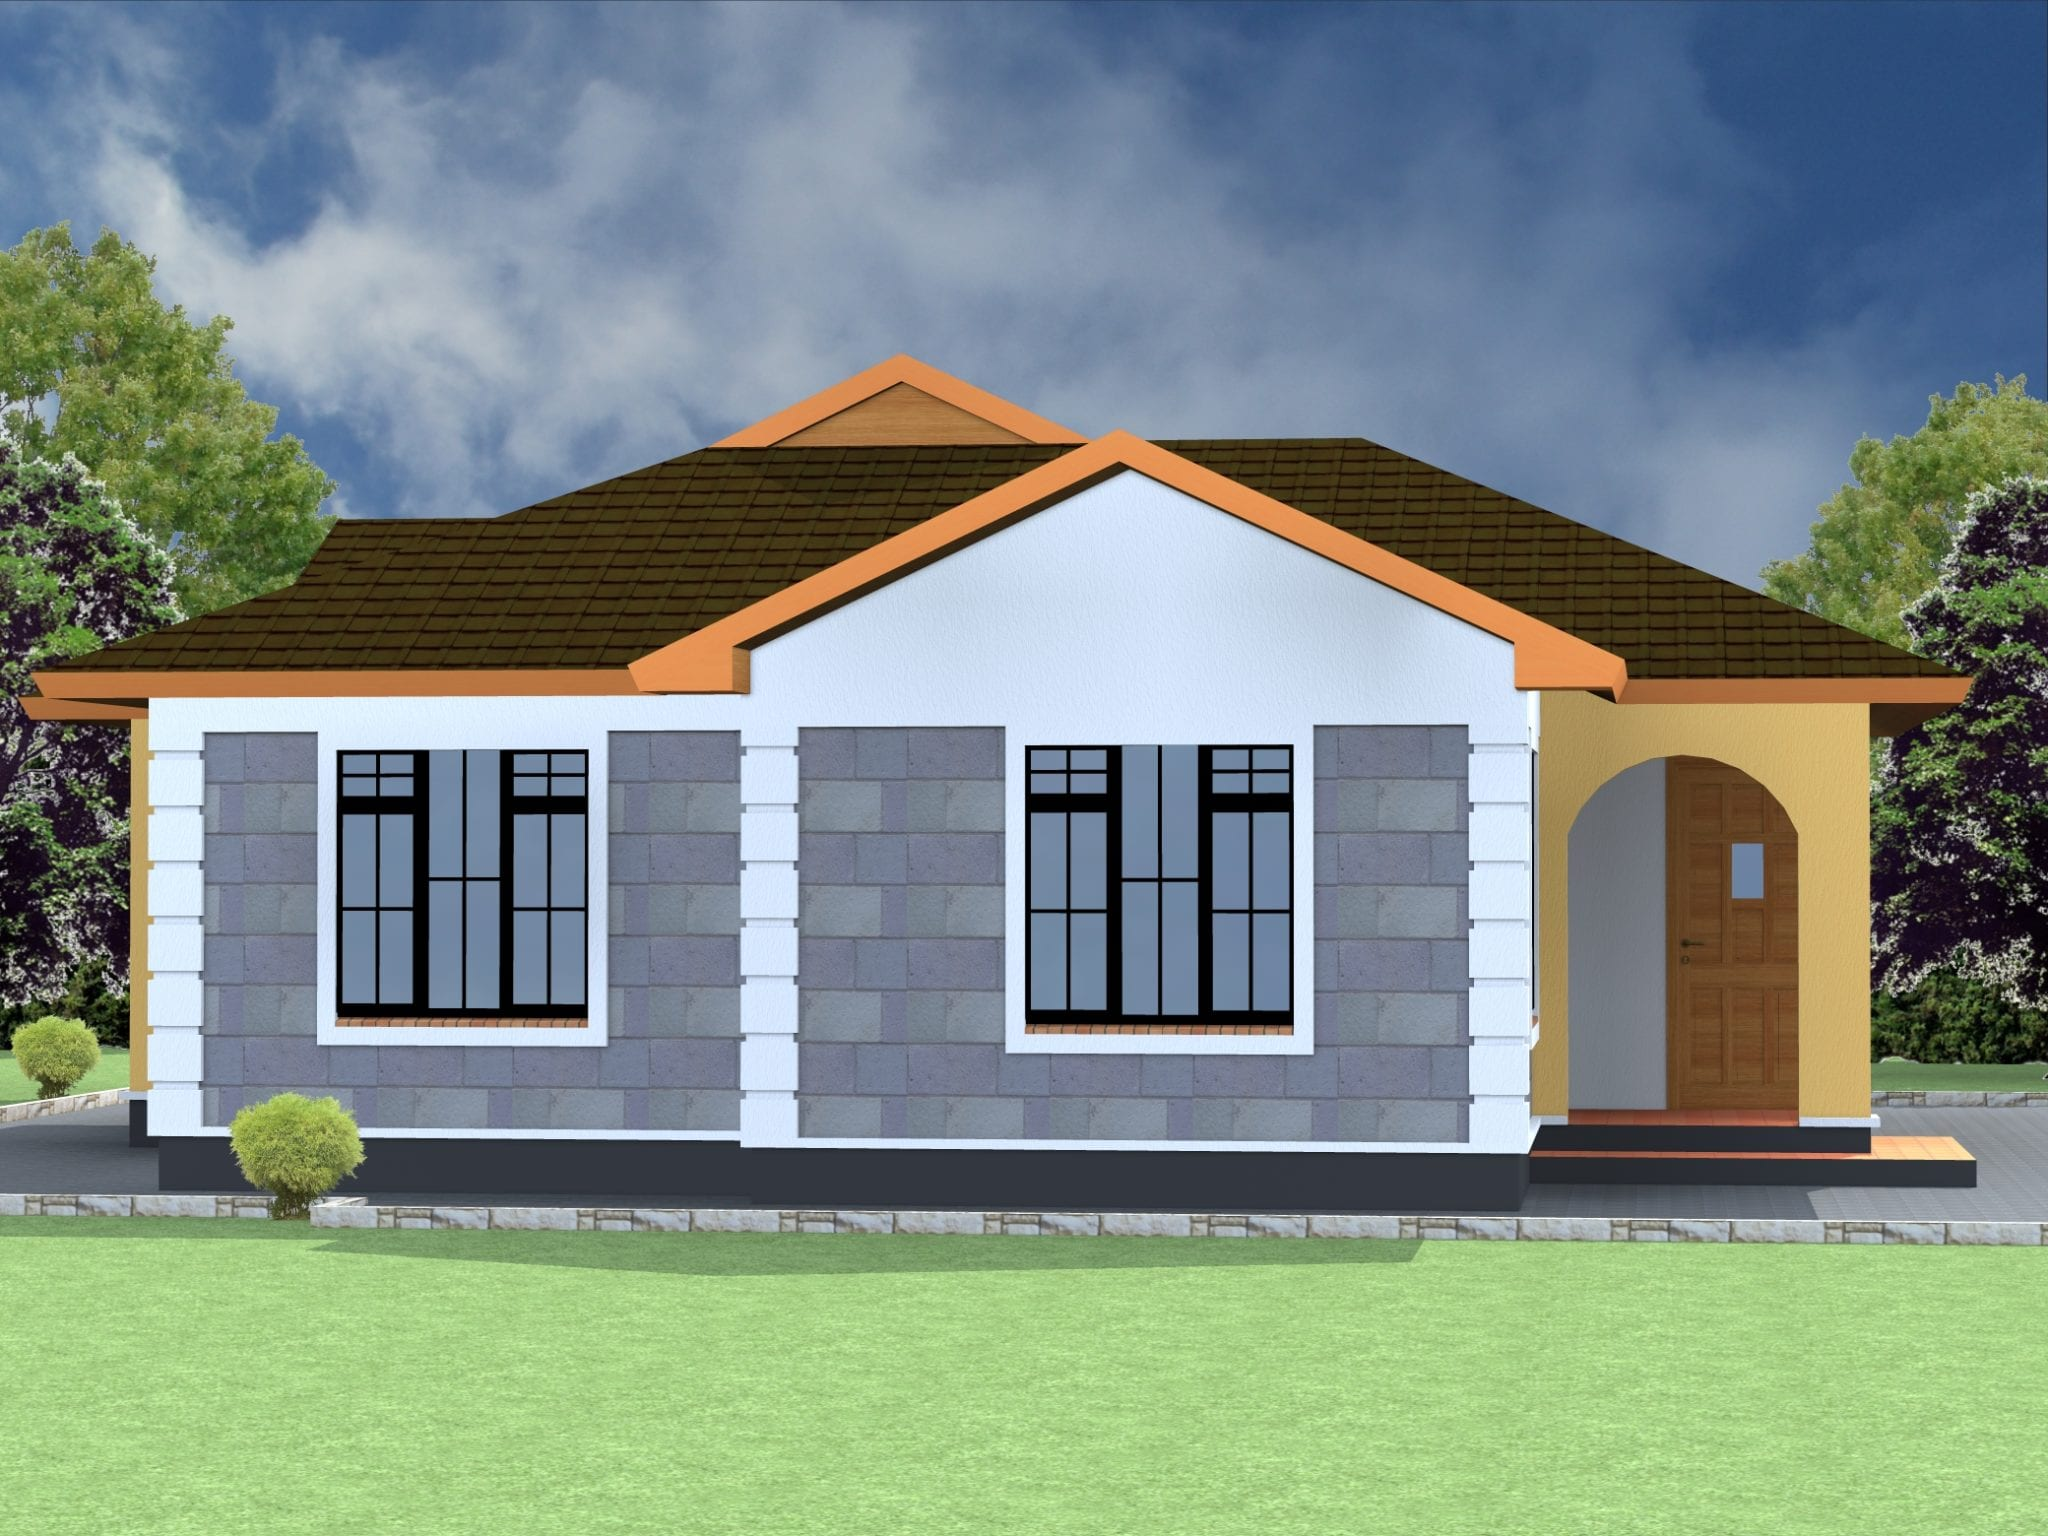 2 Bedroom House Plans Pdf S